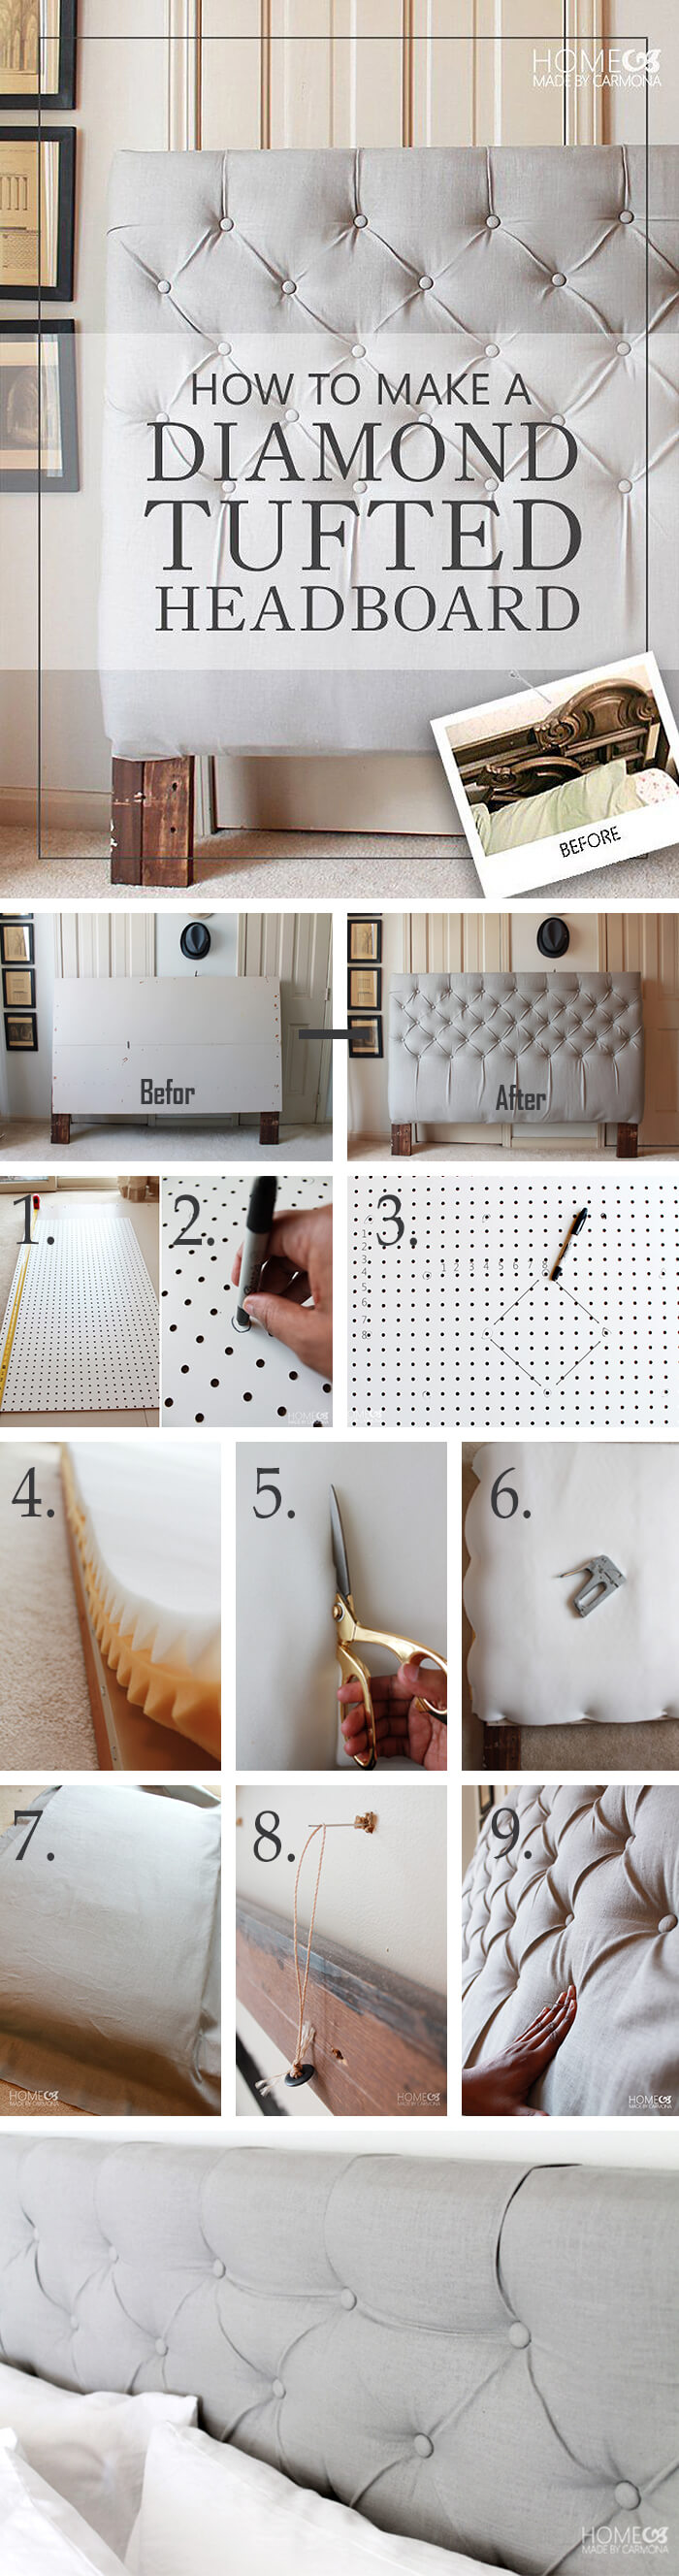 Get Anastasia Steele S Tufted Headboard Diy Project